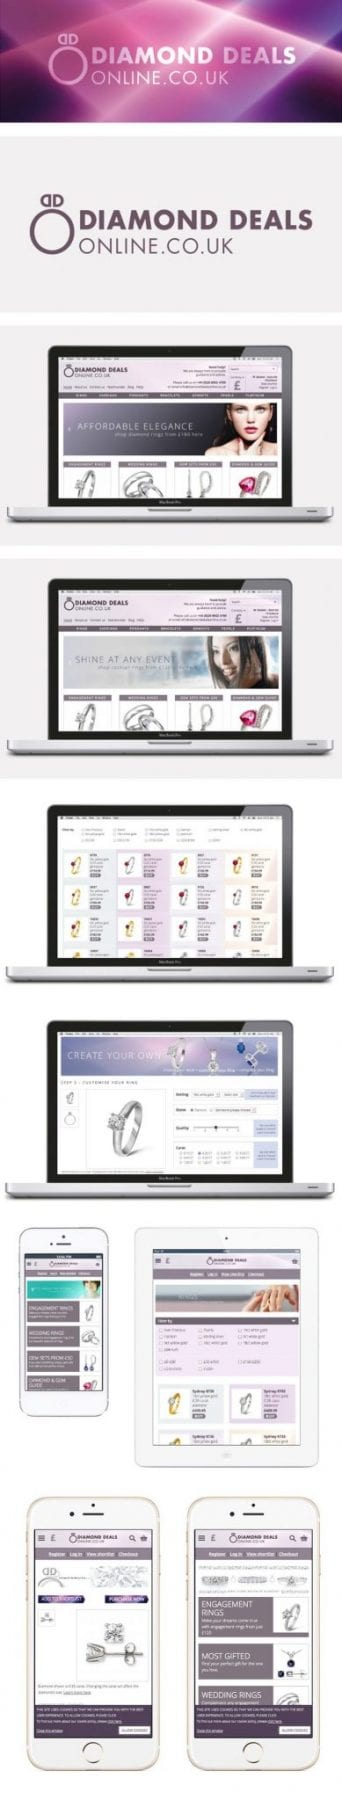 Images of Diamond Deals Online branding and e-commerce website, designed by graphic designer and branding designer Jessica Croome of Perth WA